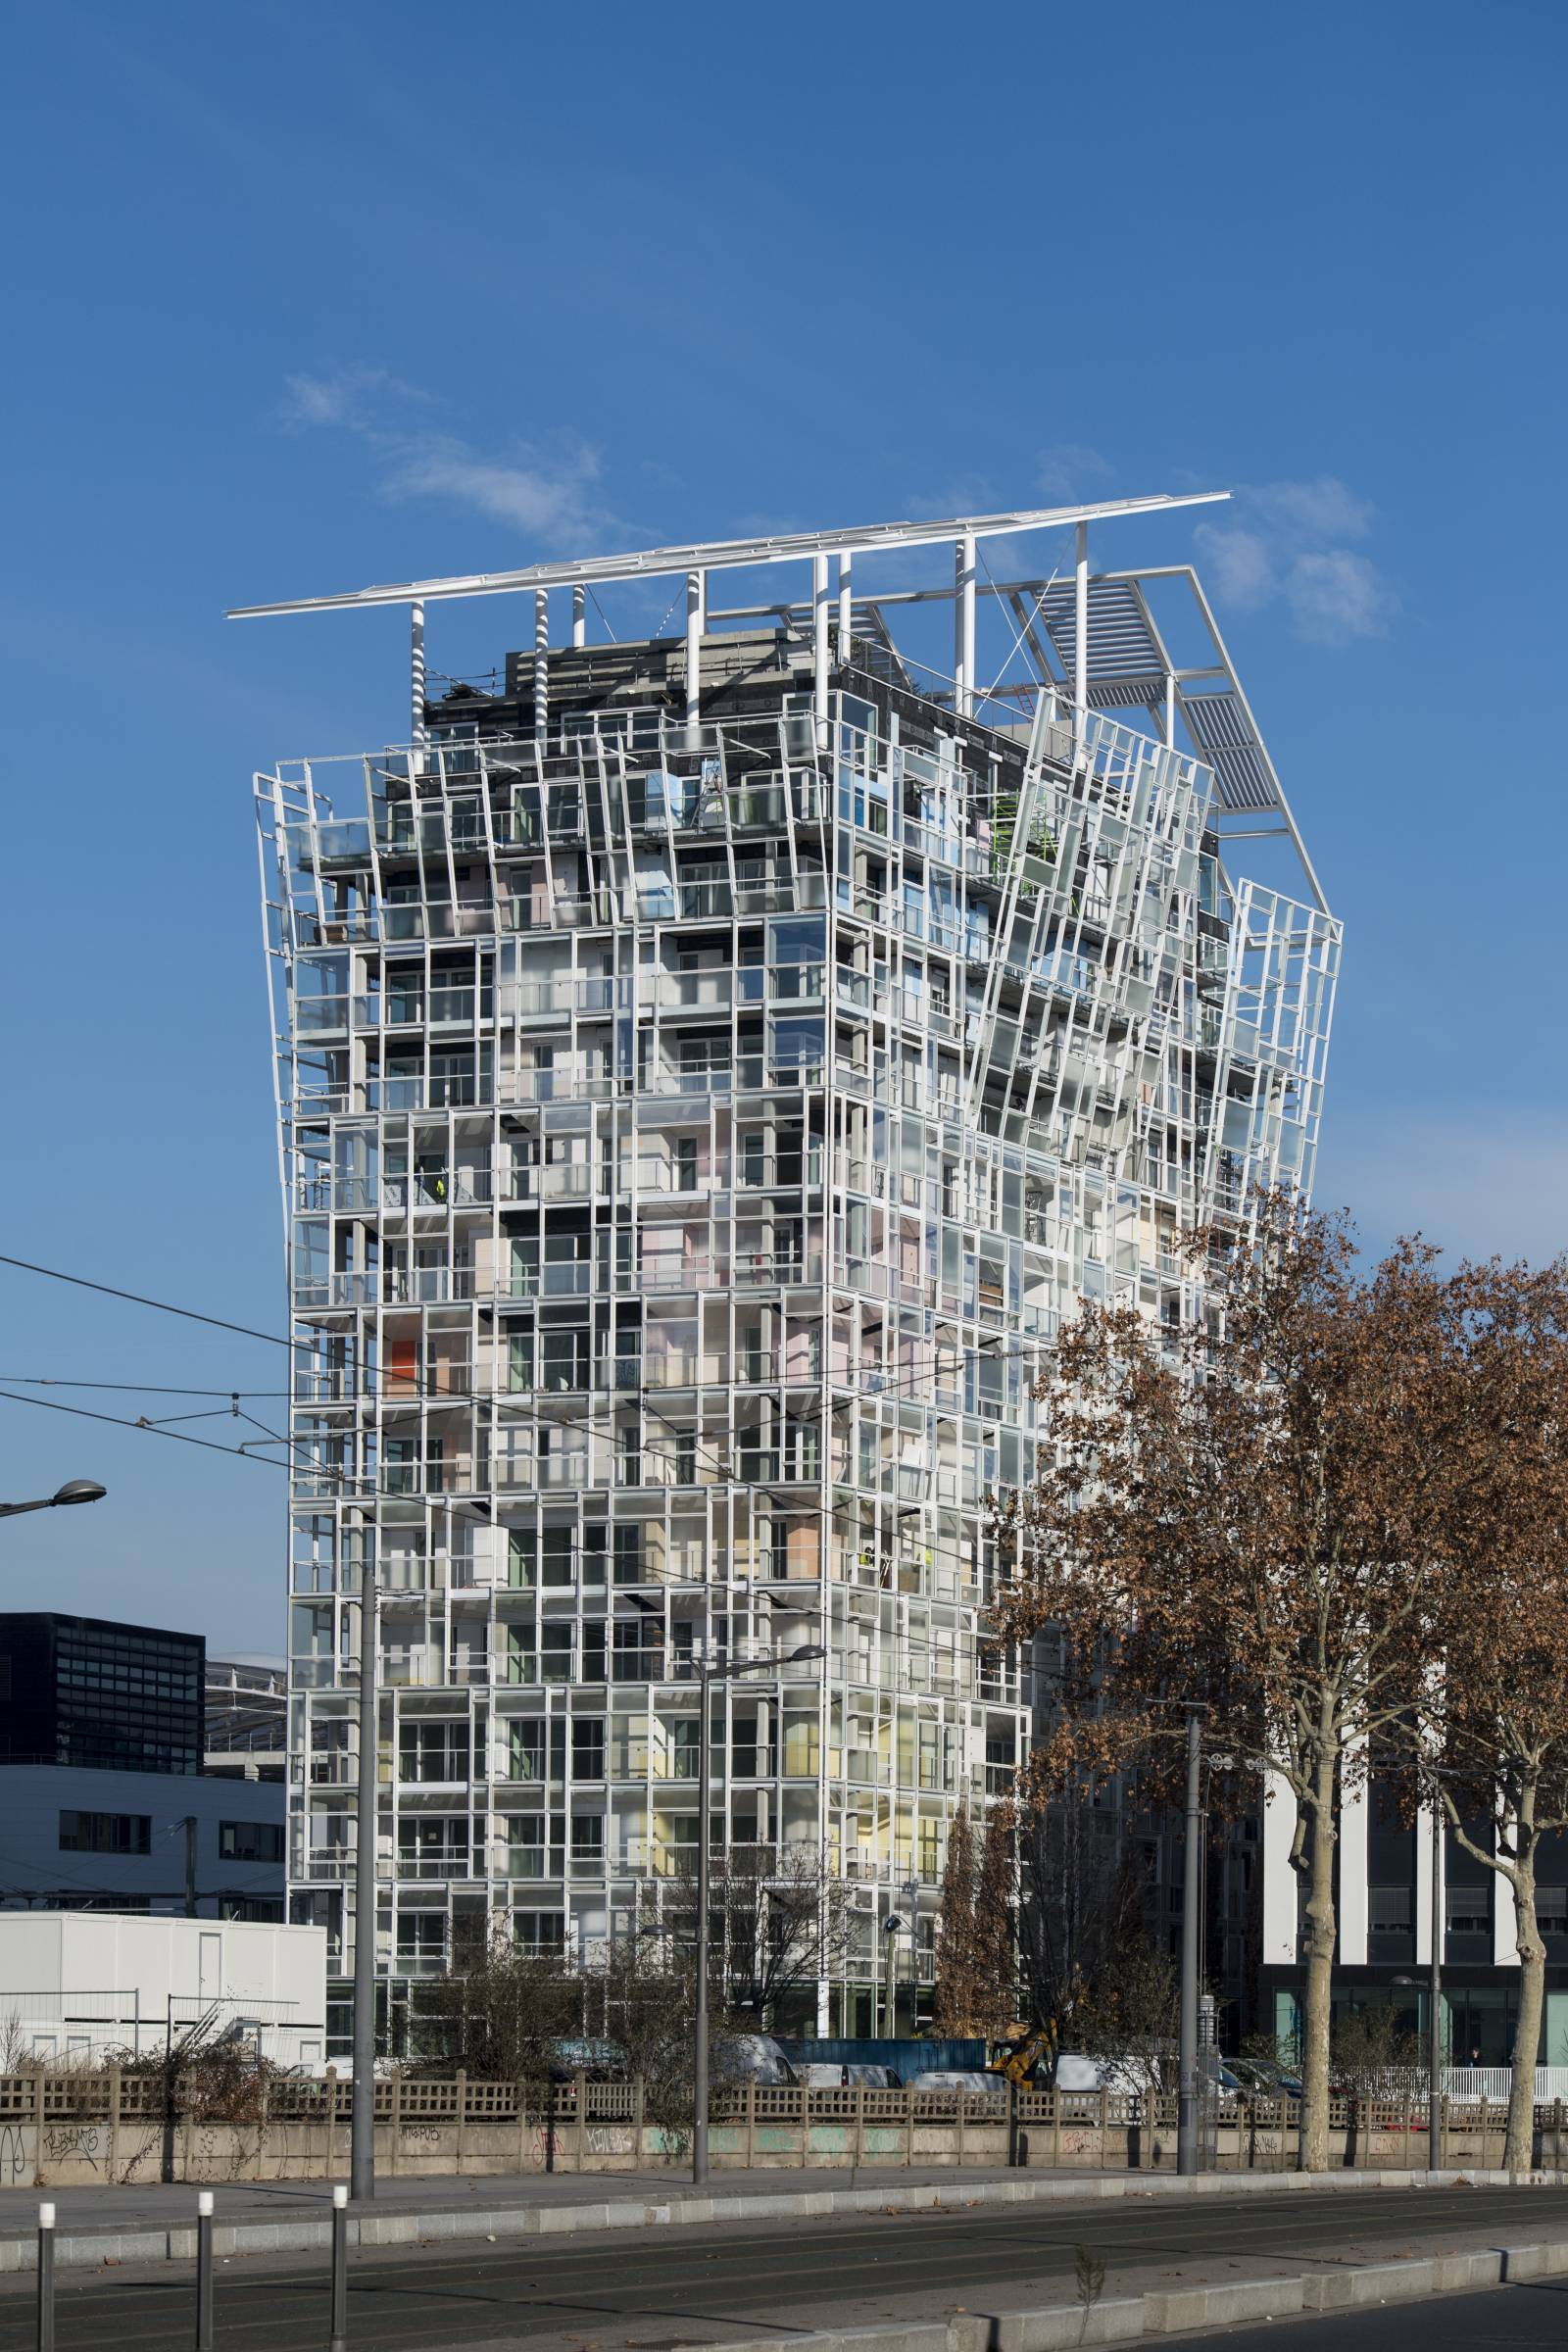 The Ateliers Jean Nouvel